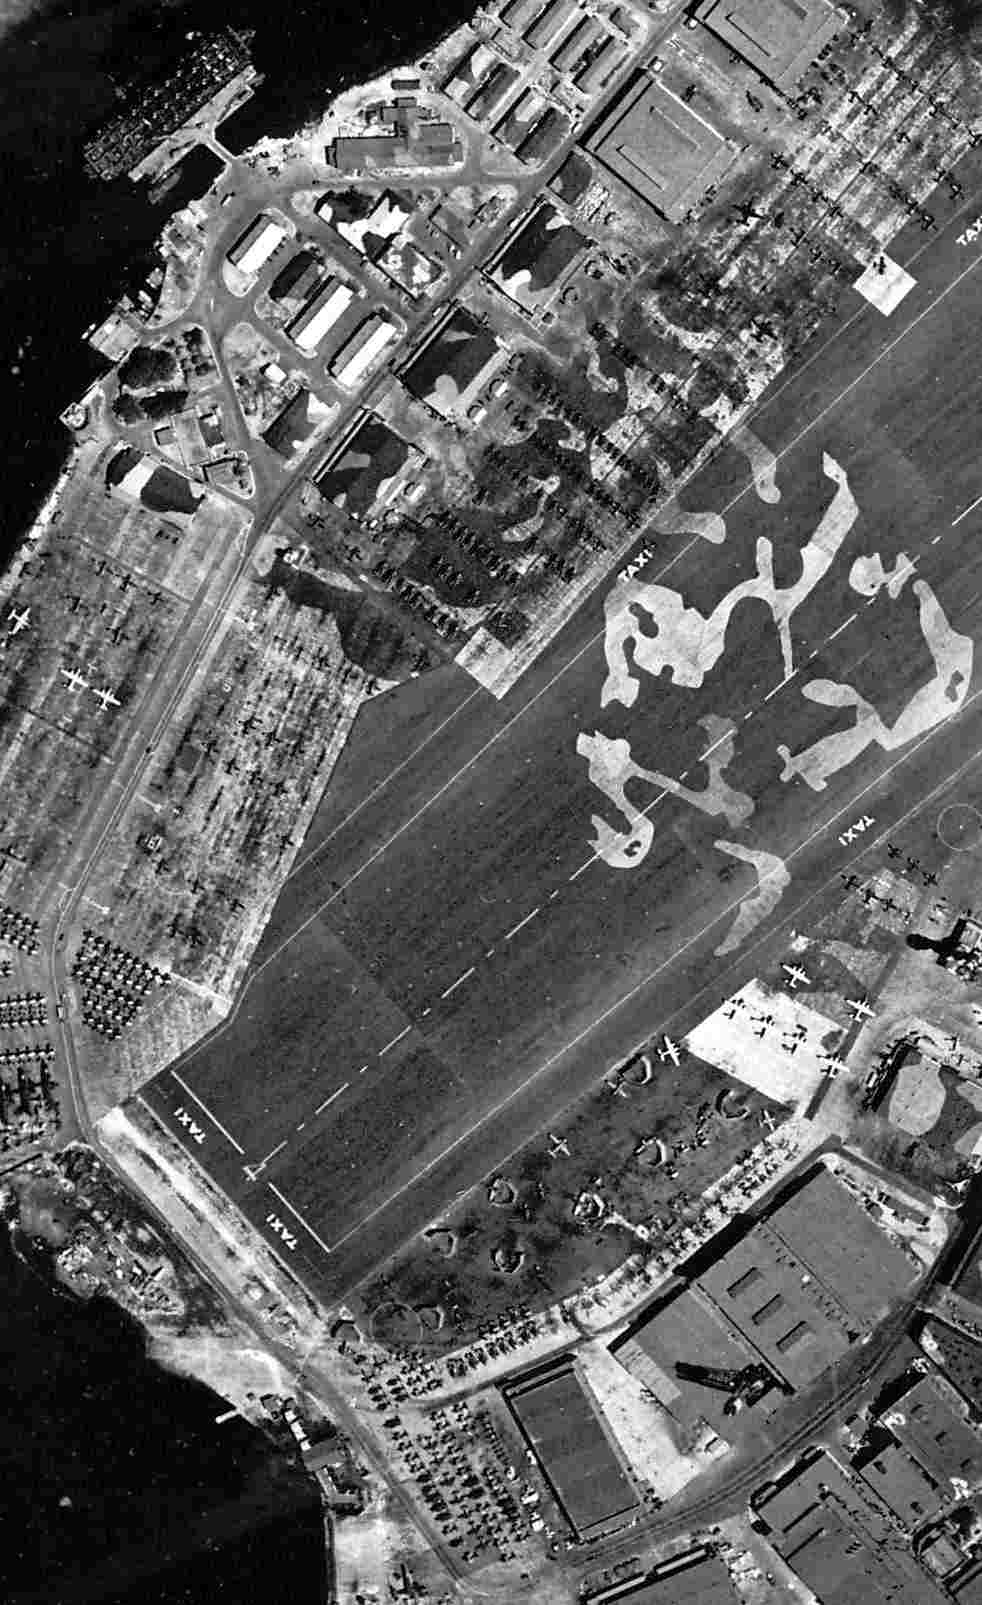 A closeup from the 9 5 44 u s navy aerial view of ford island national archives photo courtesy of brian rehwinkel